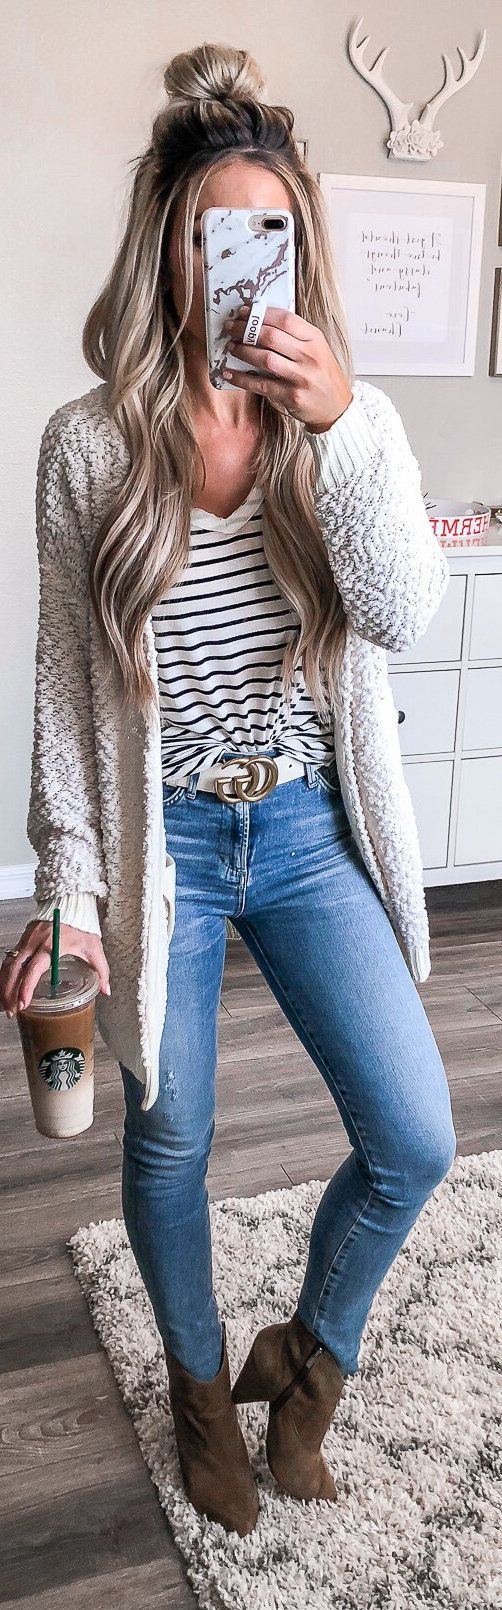 10+ Lovely Outfit Ideas To Finish This Summer With Style